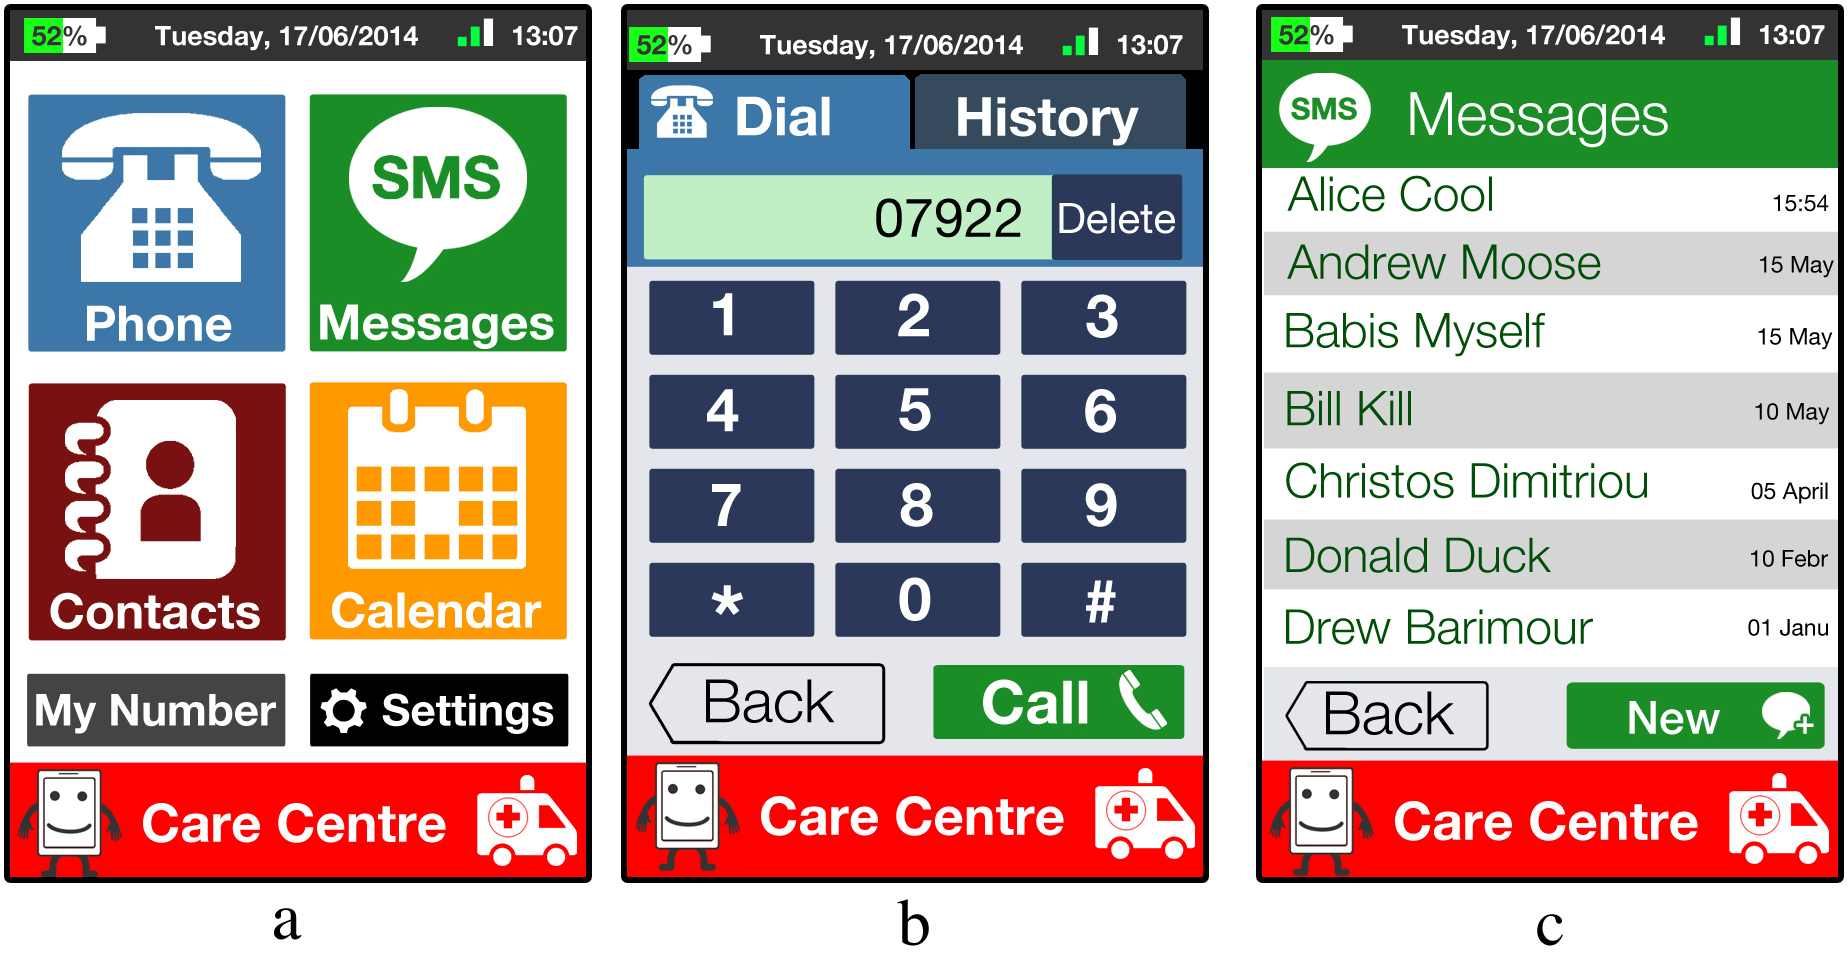 The first three prototypes images, that came out from the design phase. From left to                                                                     right: a) The home screen of the proposed interface b) The phone-dial screen c) The messages                                                                     screen.